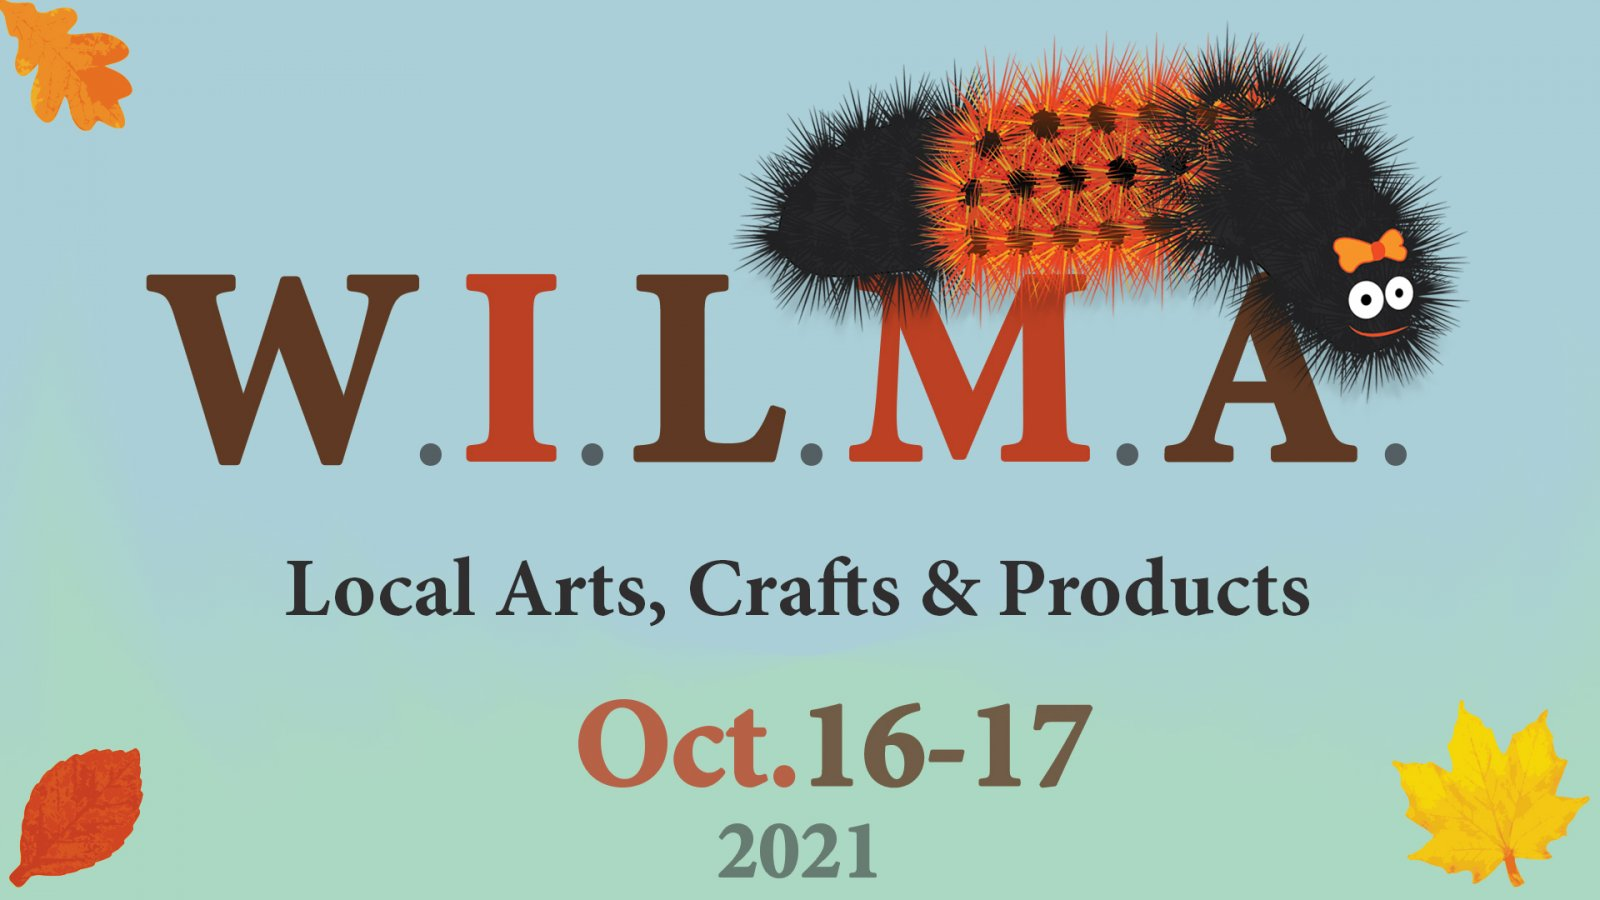 WILMA Local arts, crafts and products October 16-17, 2021